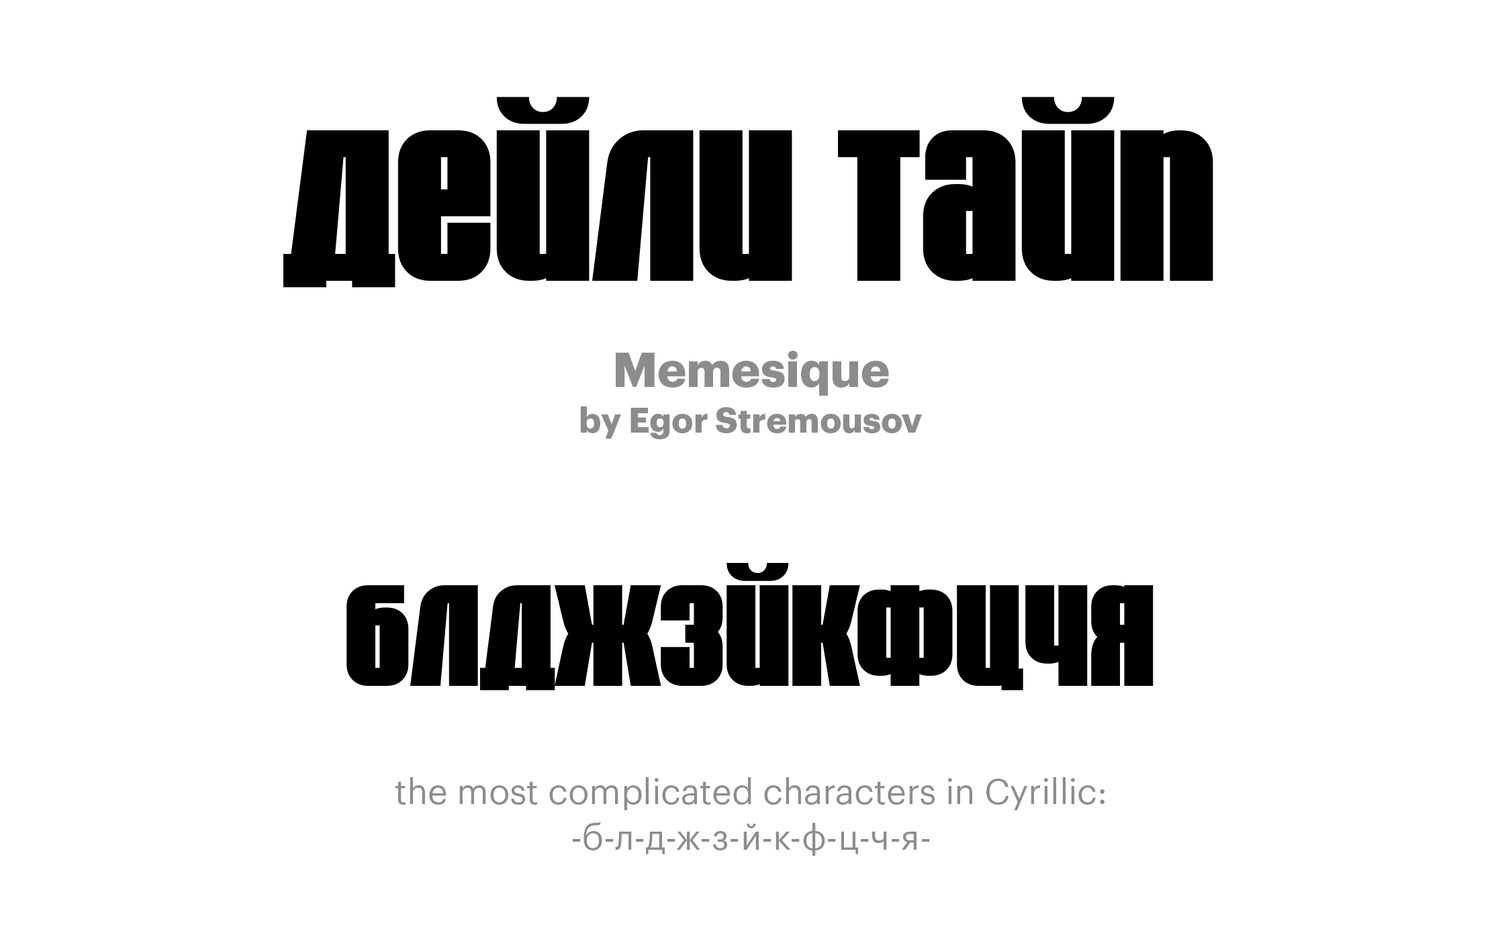 Memesique-by-Egor-Stremousov